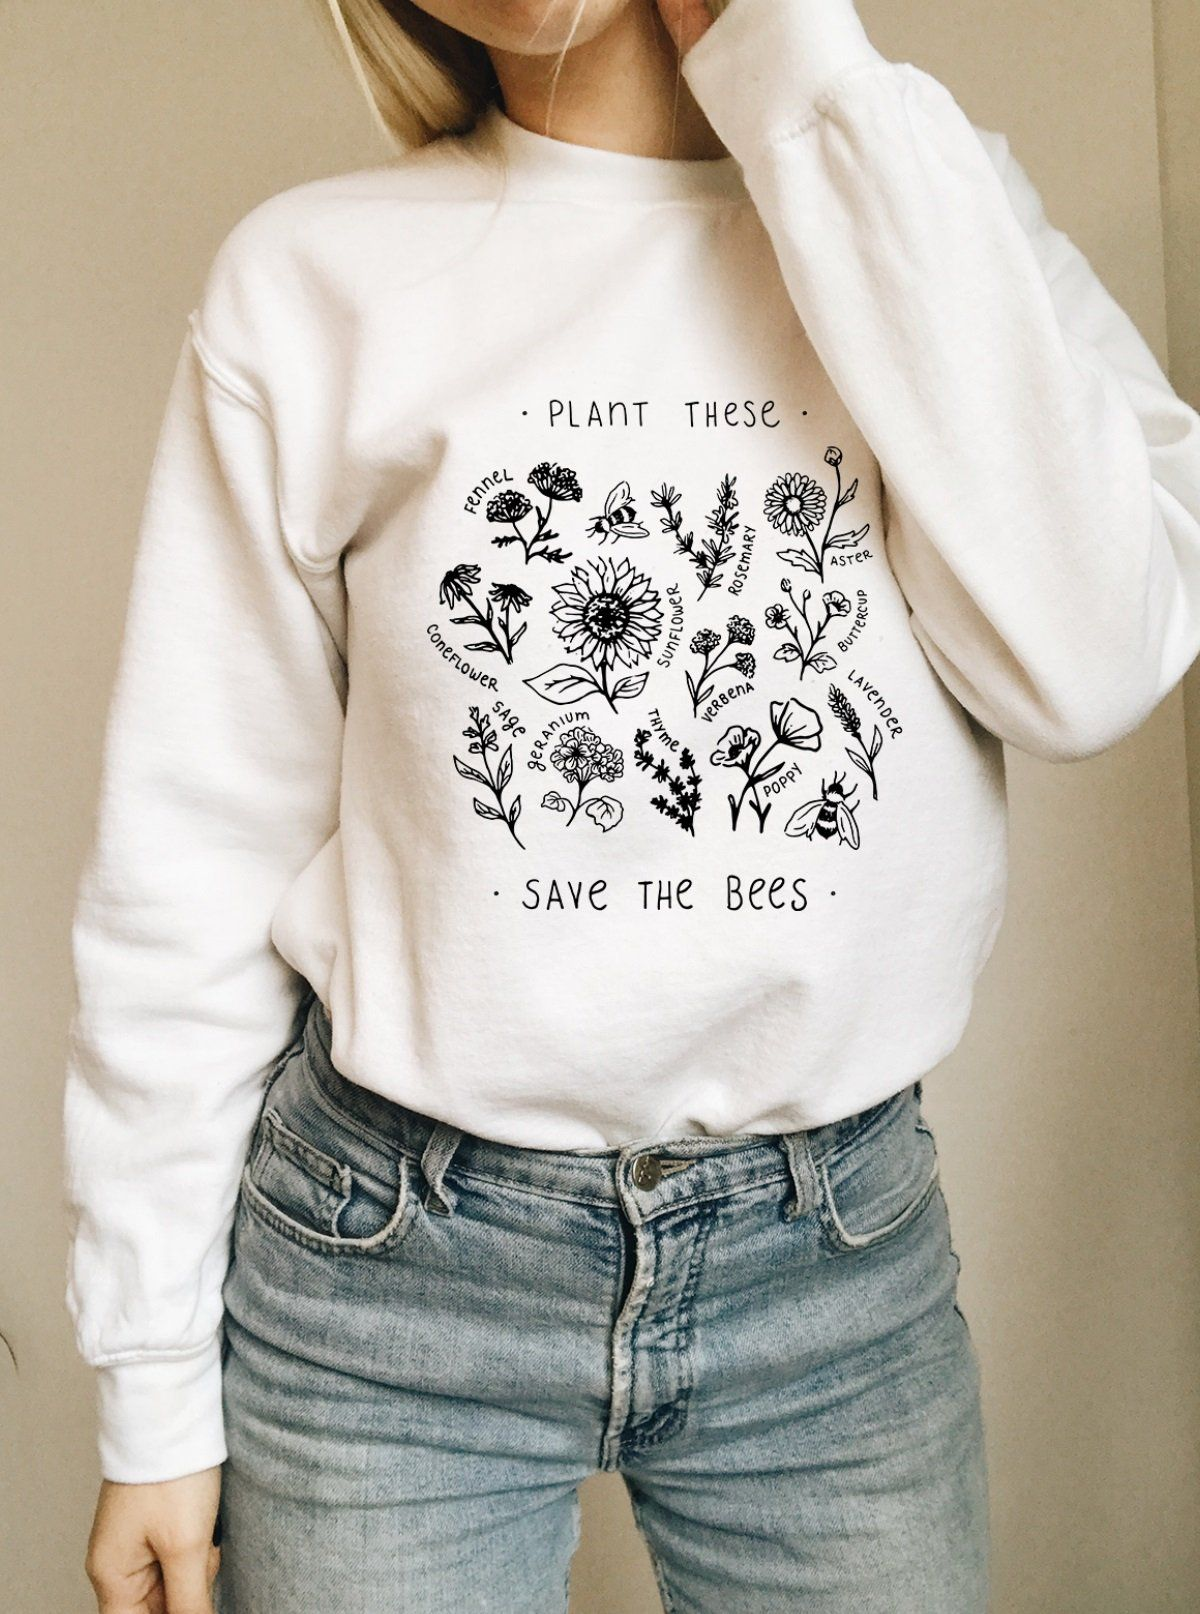 a11263a05 Plant These, Save The Bees - Crew Sweatshirt - Wholesome Culture Crew  Sweatshirts, Save